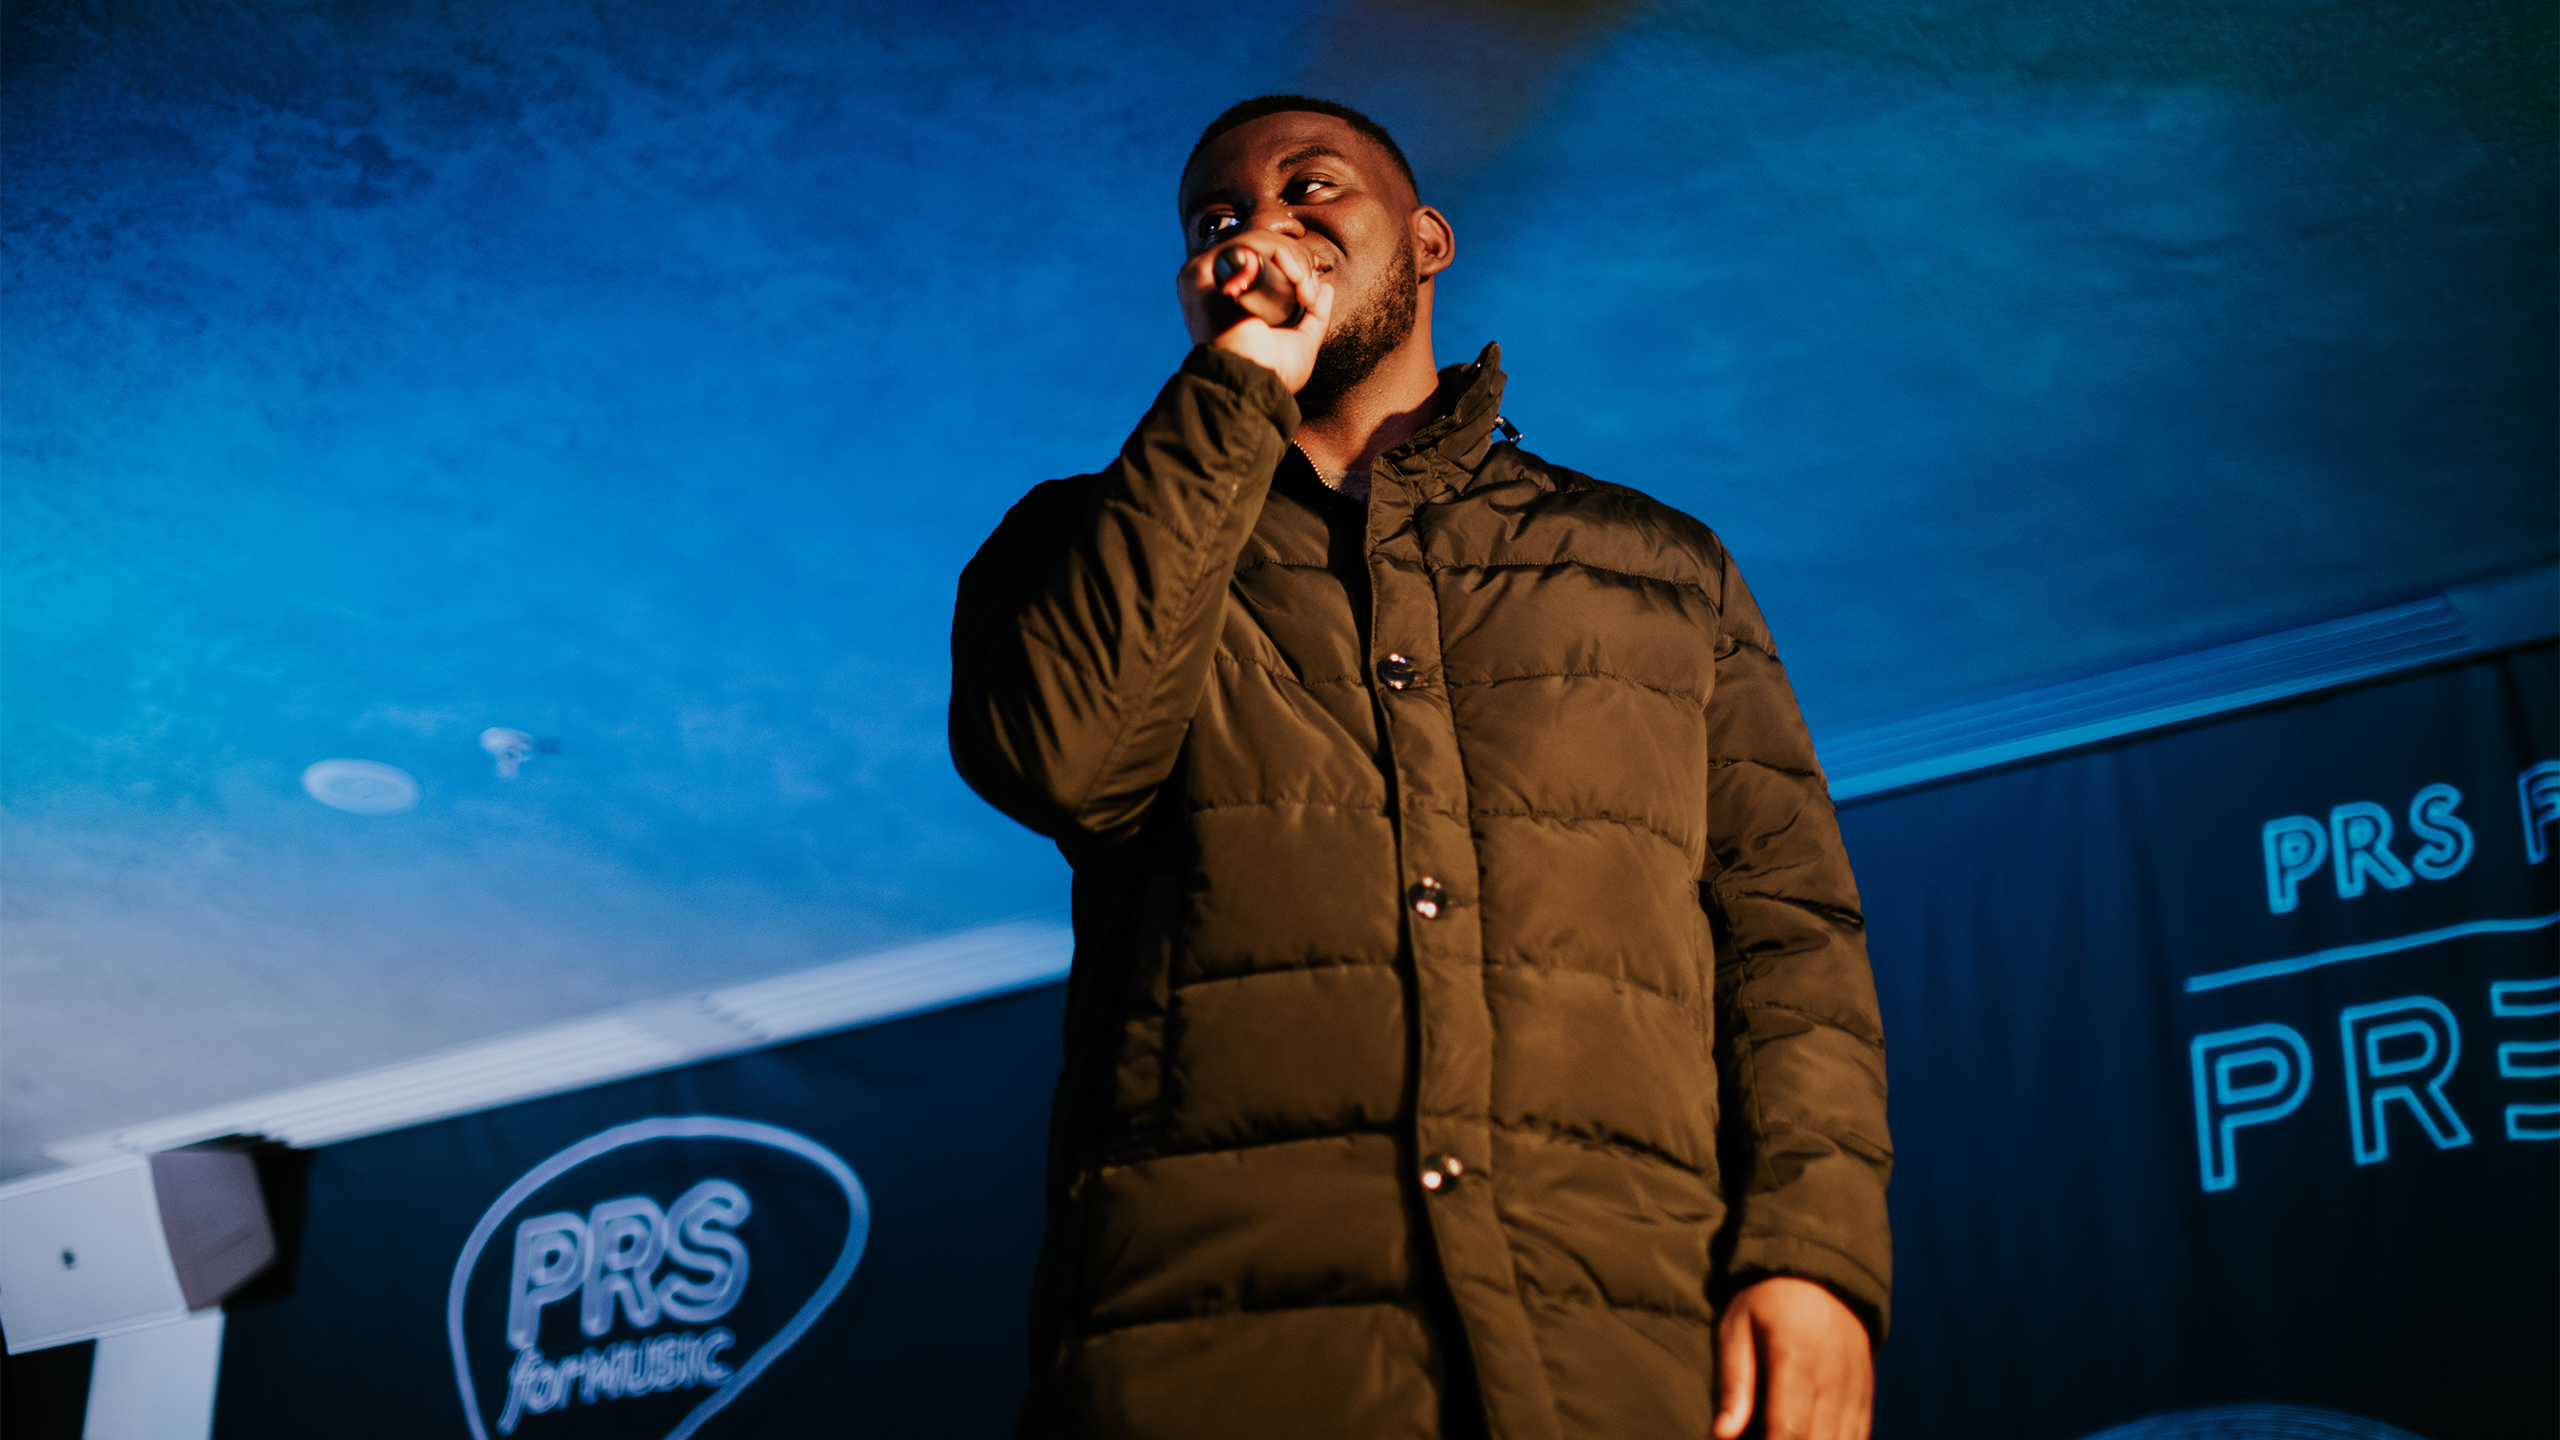 Novelist special guest performs at PRS presents November 2018